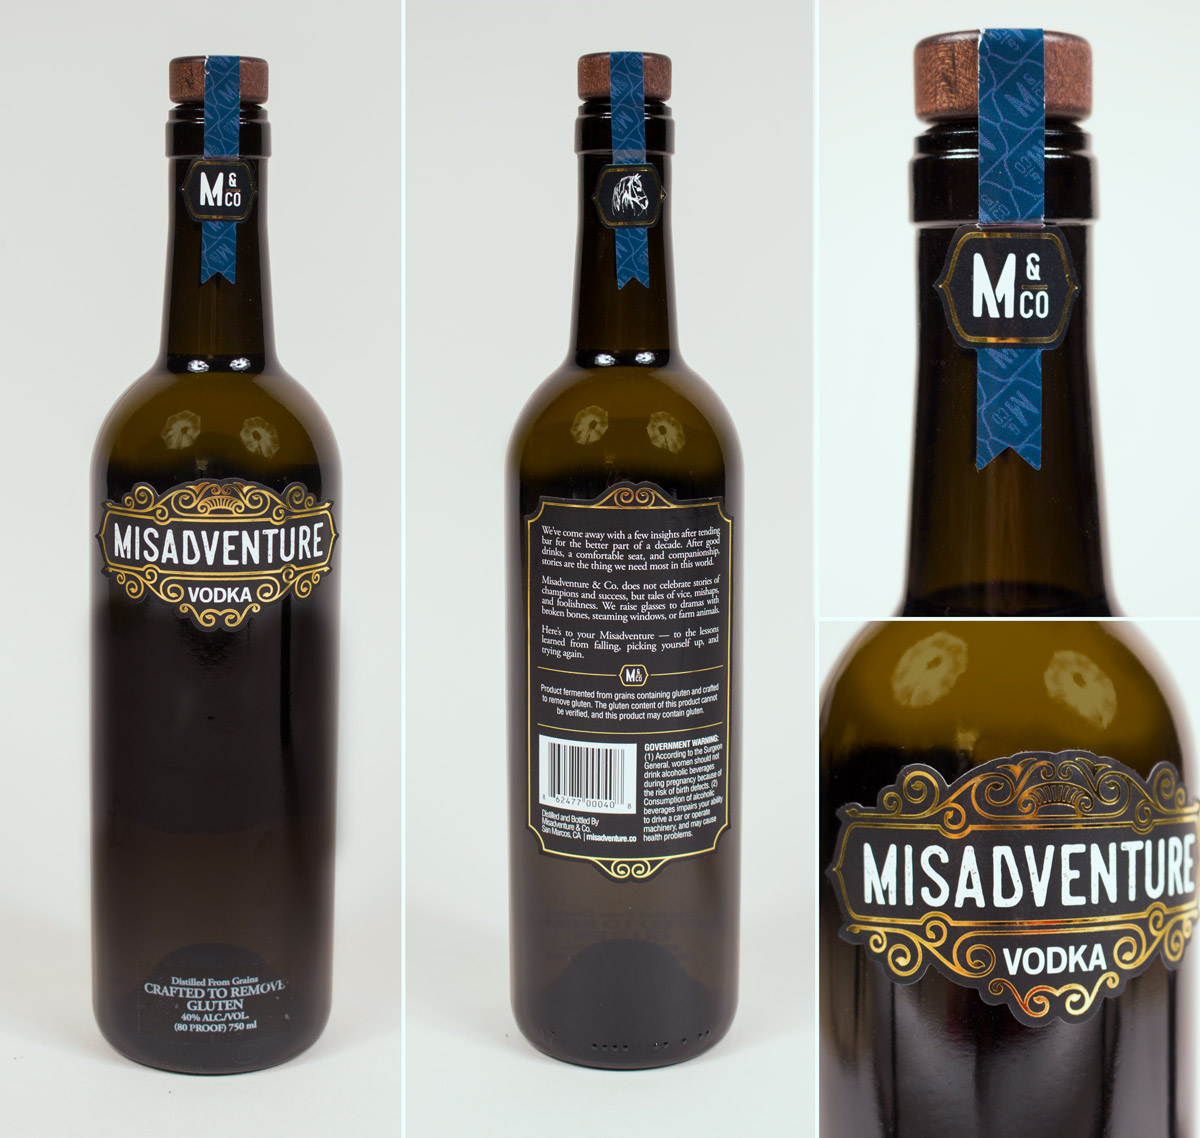 Misadventure and Company's vodka bottle